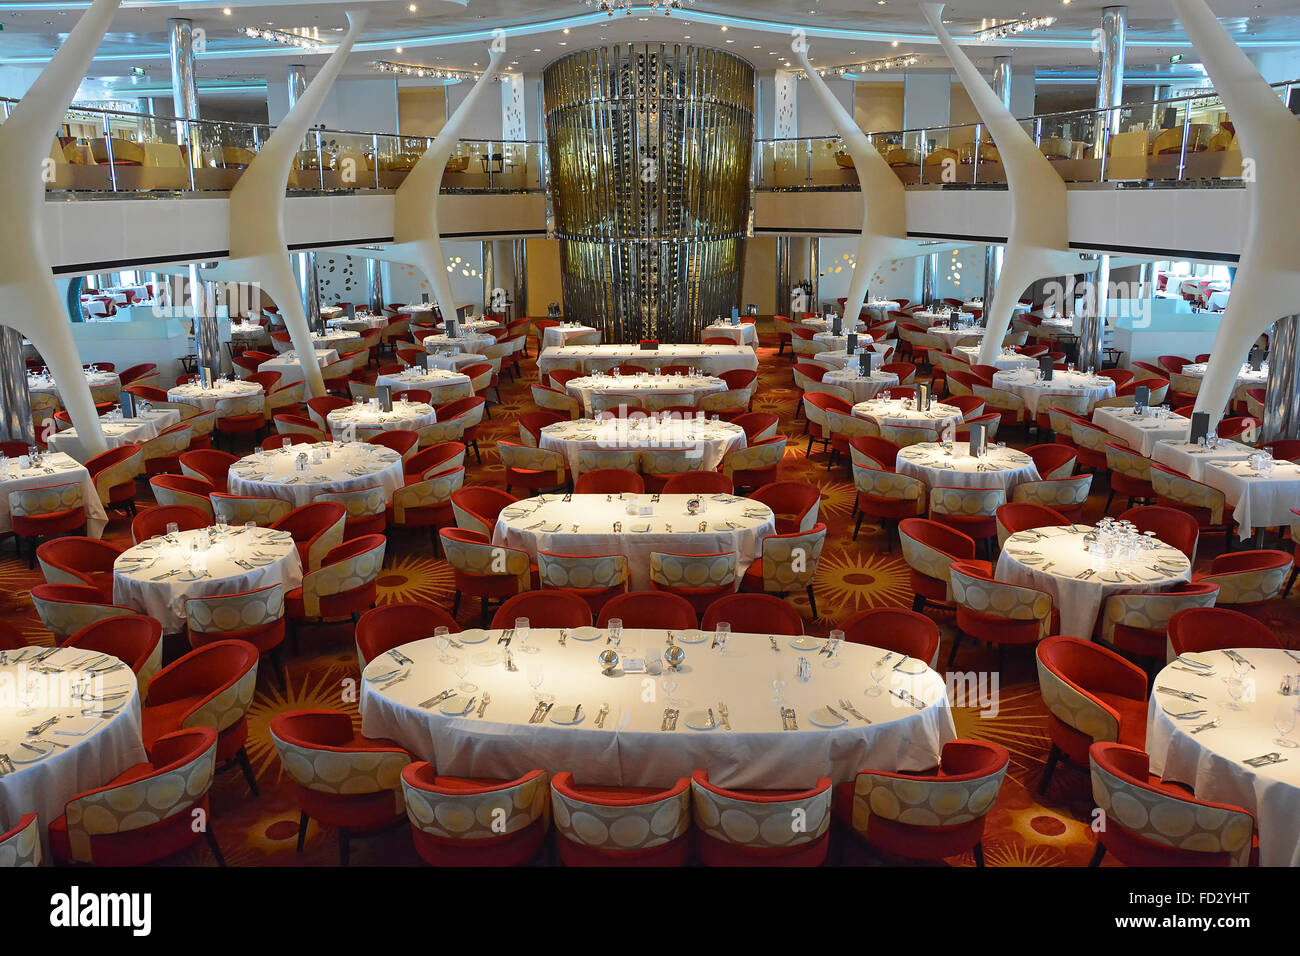 Cruise ship liner interior view of design of luxury restaurant place settings at tables & chairs prepared for evening of fine dining Mediterranean Sea Stock Photo